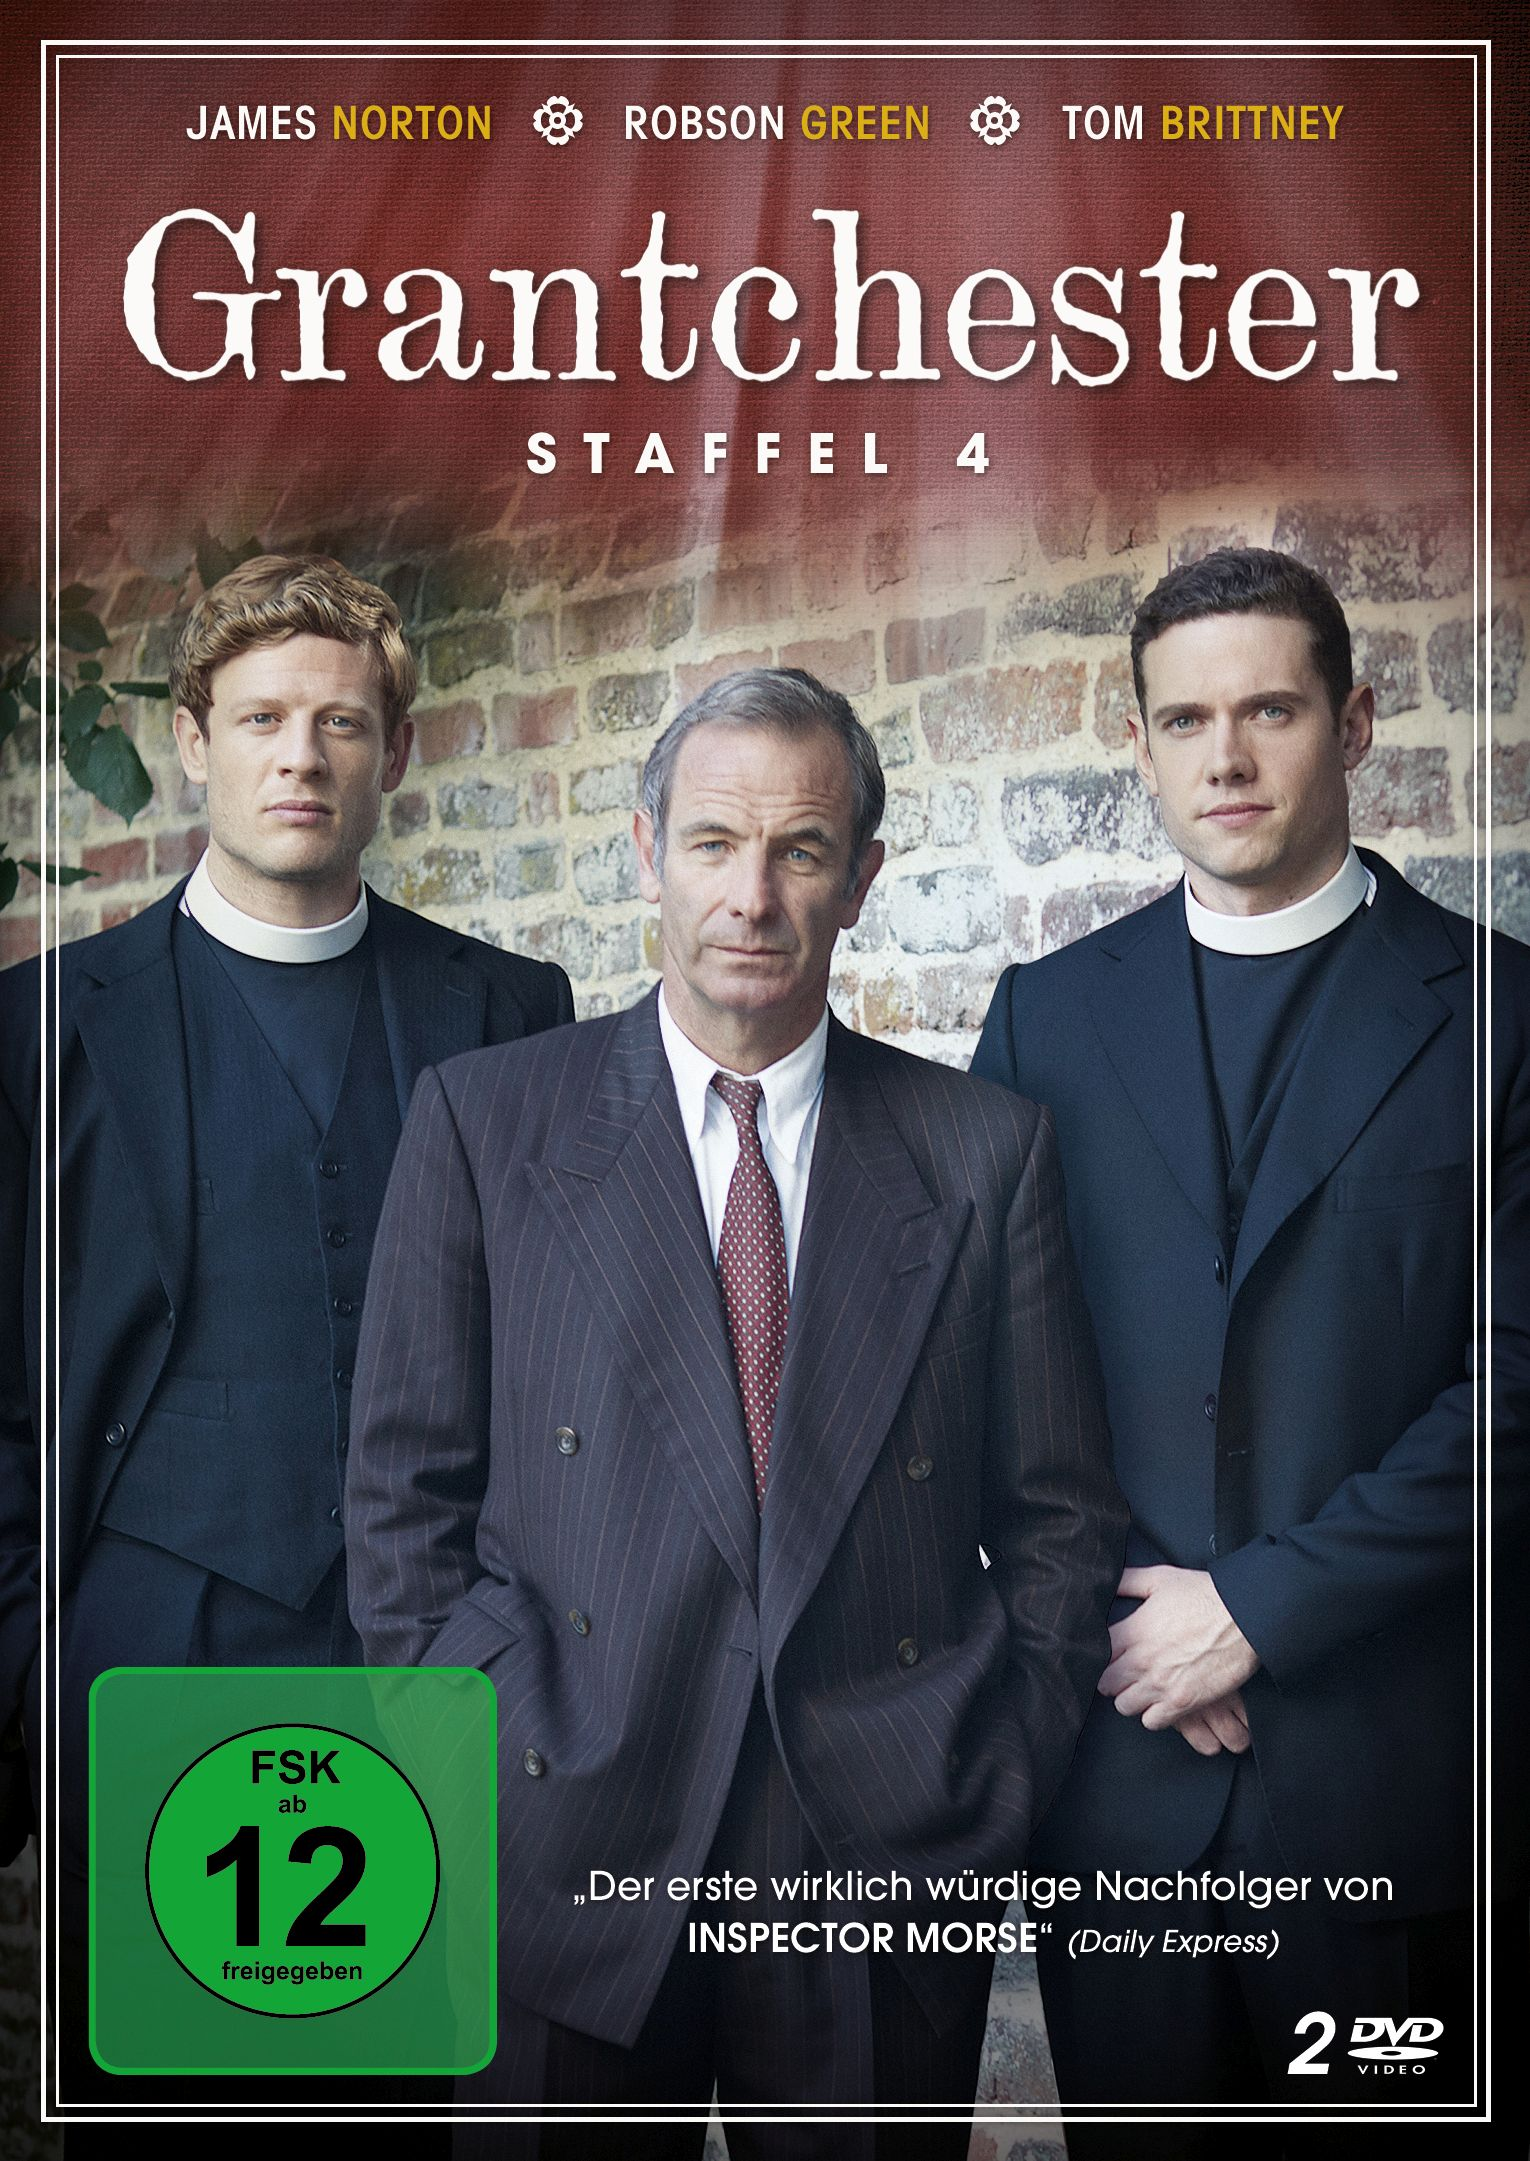 DVD Cover Grantchester 4